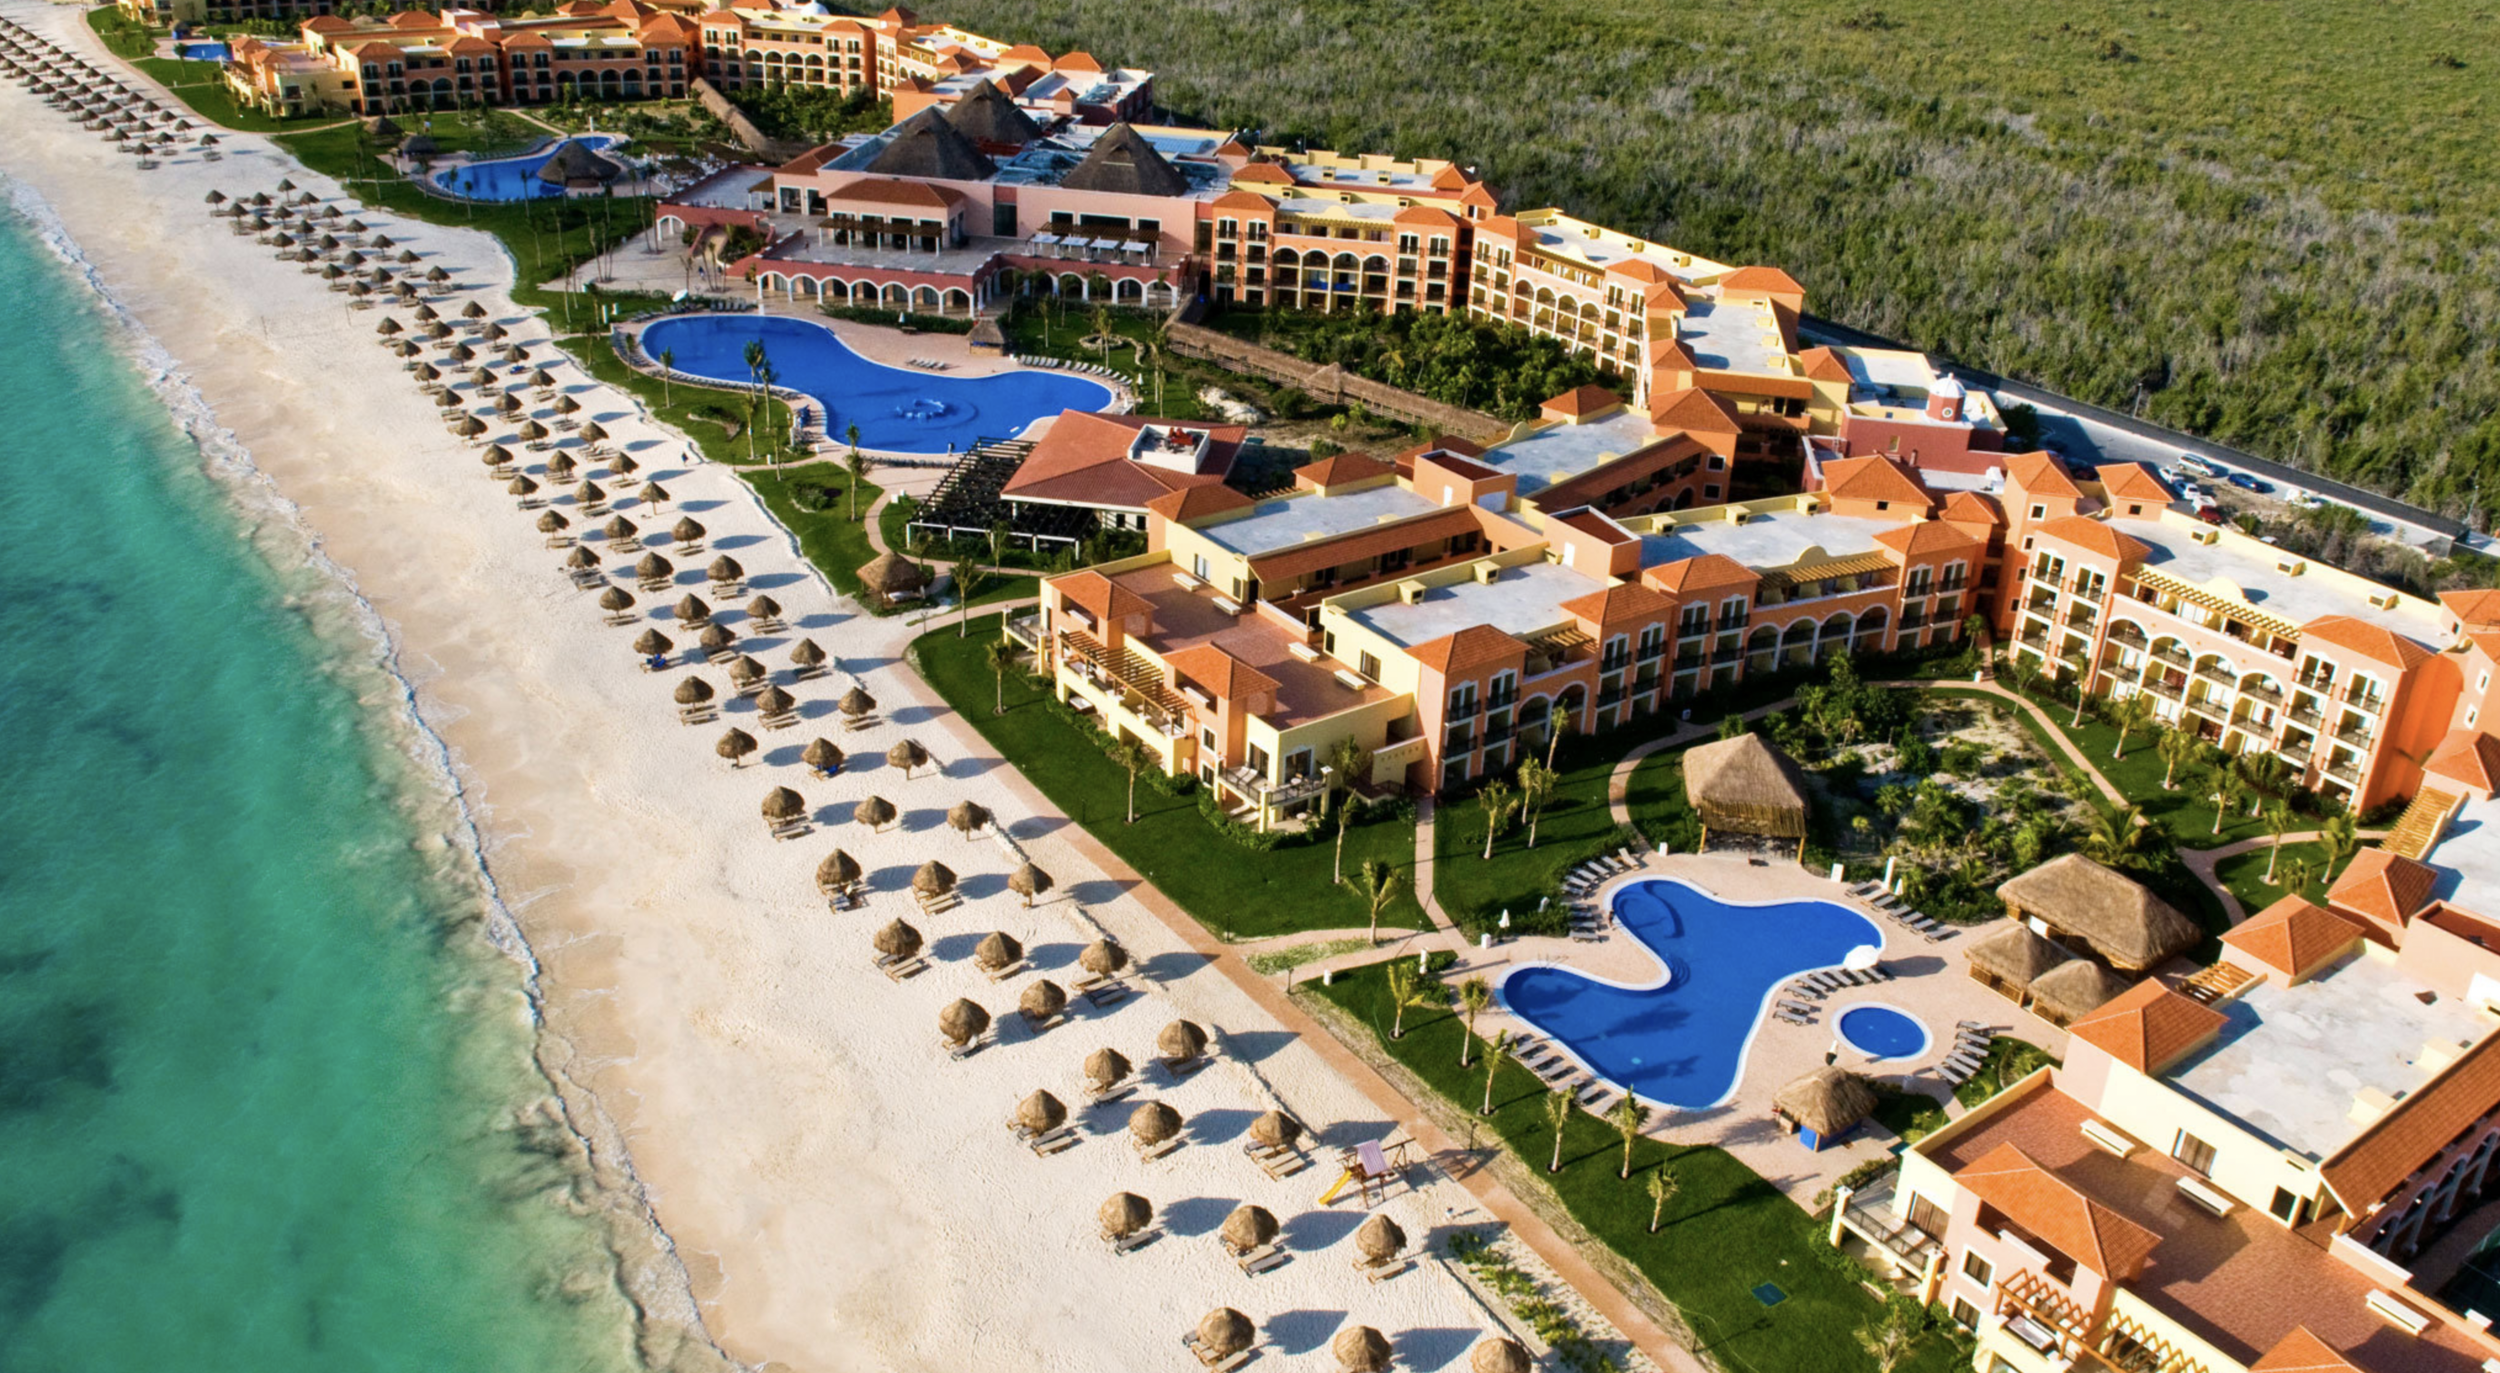 September 13:DEPARTURE/Arrival - Early this morning you'll depart for Cancun, getting you on the beach as soon as possible!Check into your room and start enjoying the weekend together!